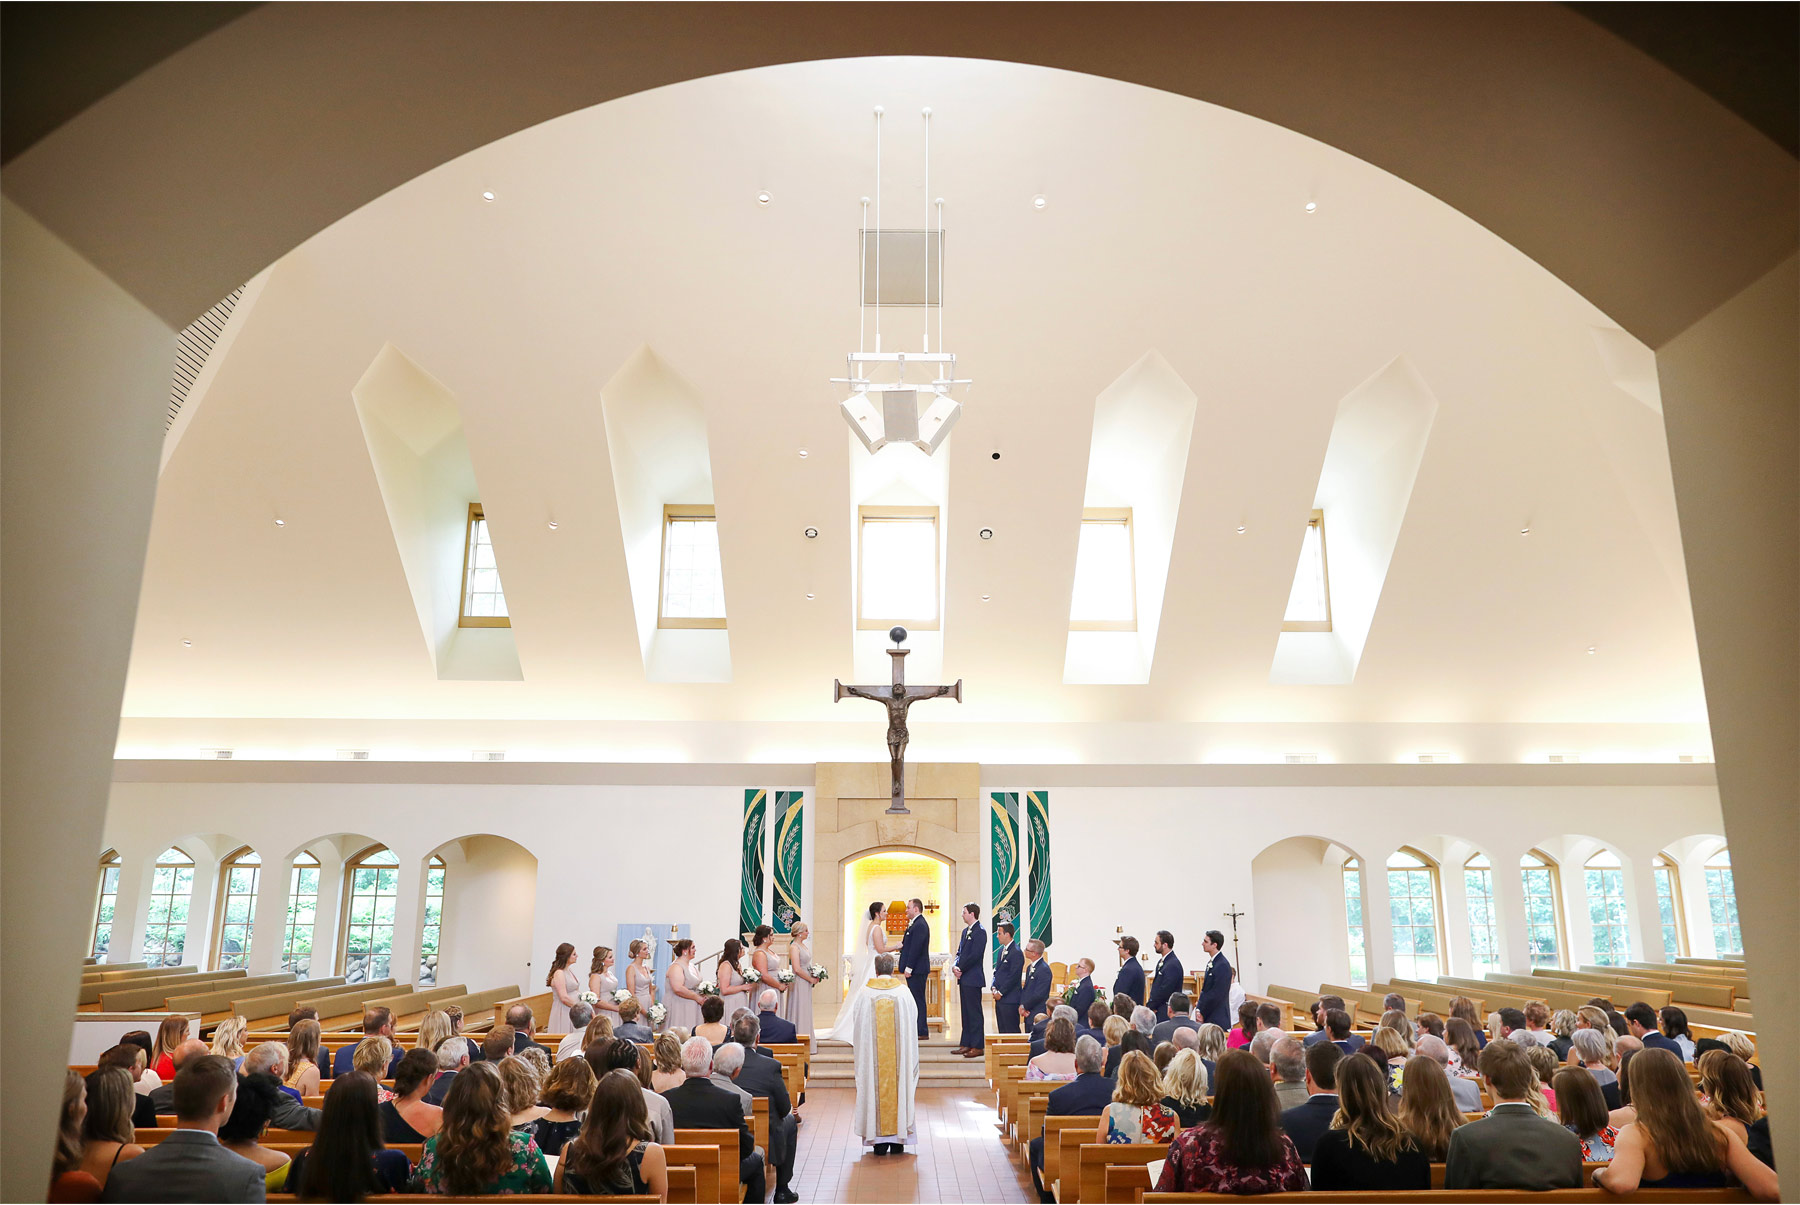 13-Vick-Photography-Wedding-Minneapolis-Minnesota-Our-Lady-of-Grace-Catholic-Church-Ceremony-Hug-Erin-and-David.jpg